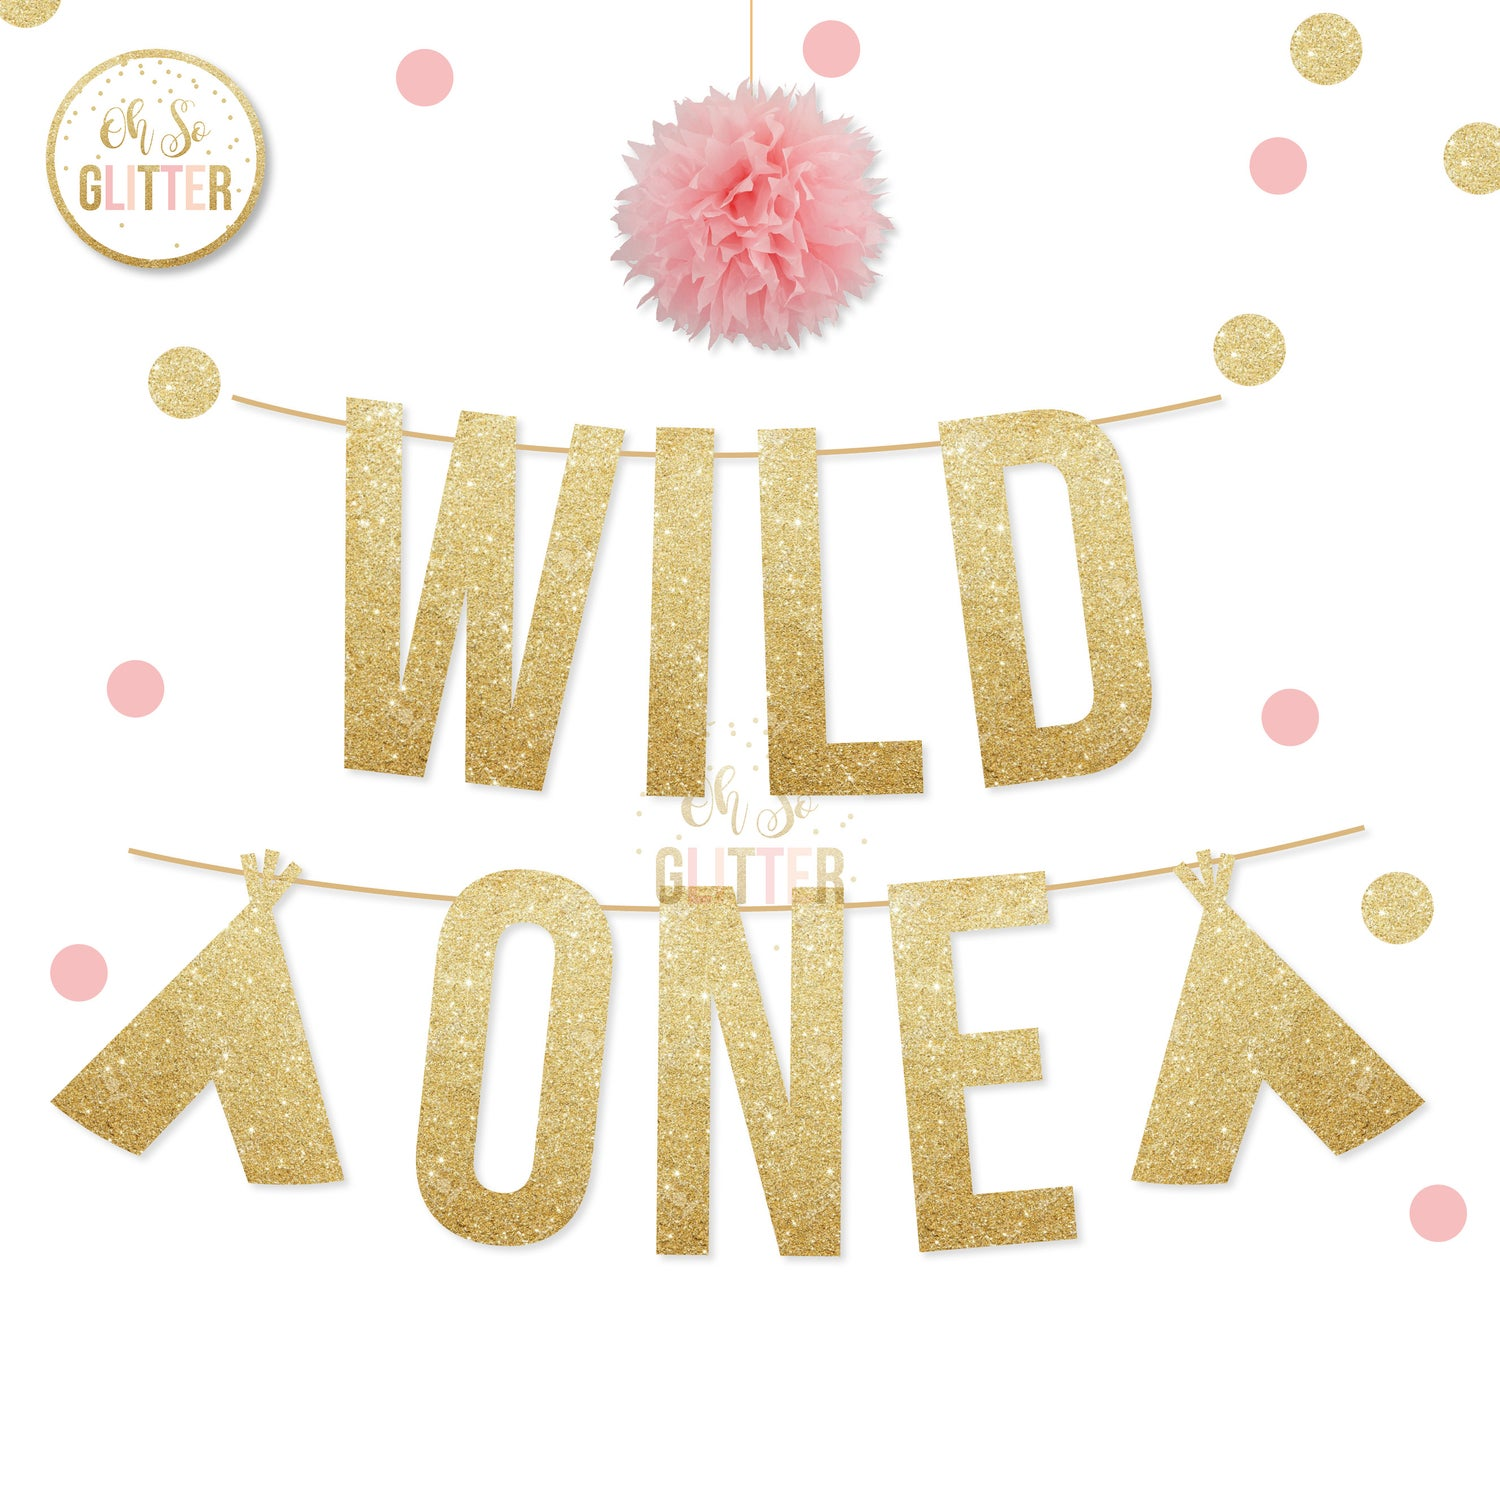 Image of Wild one glitter banner